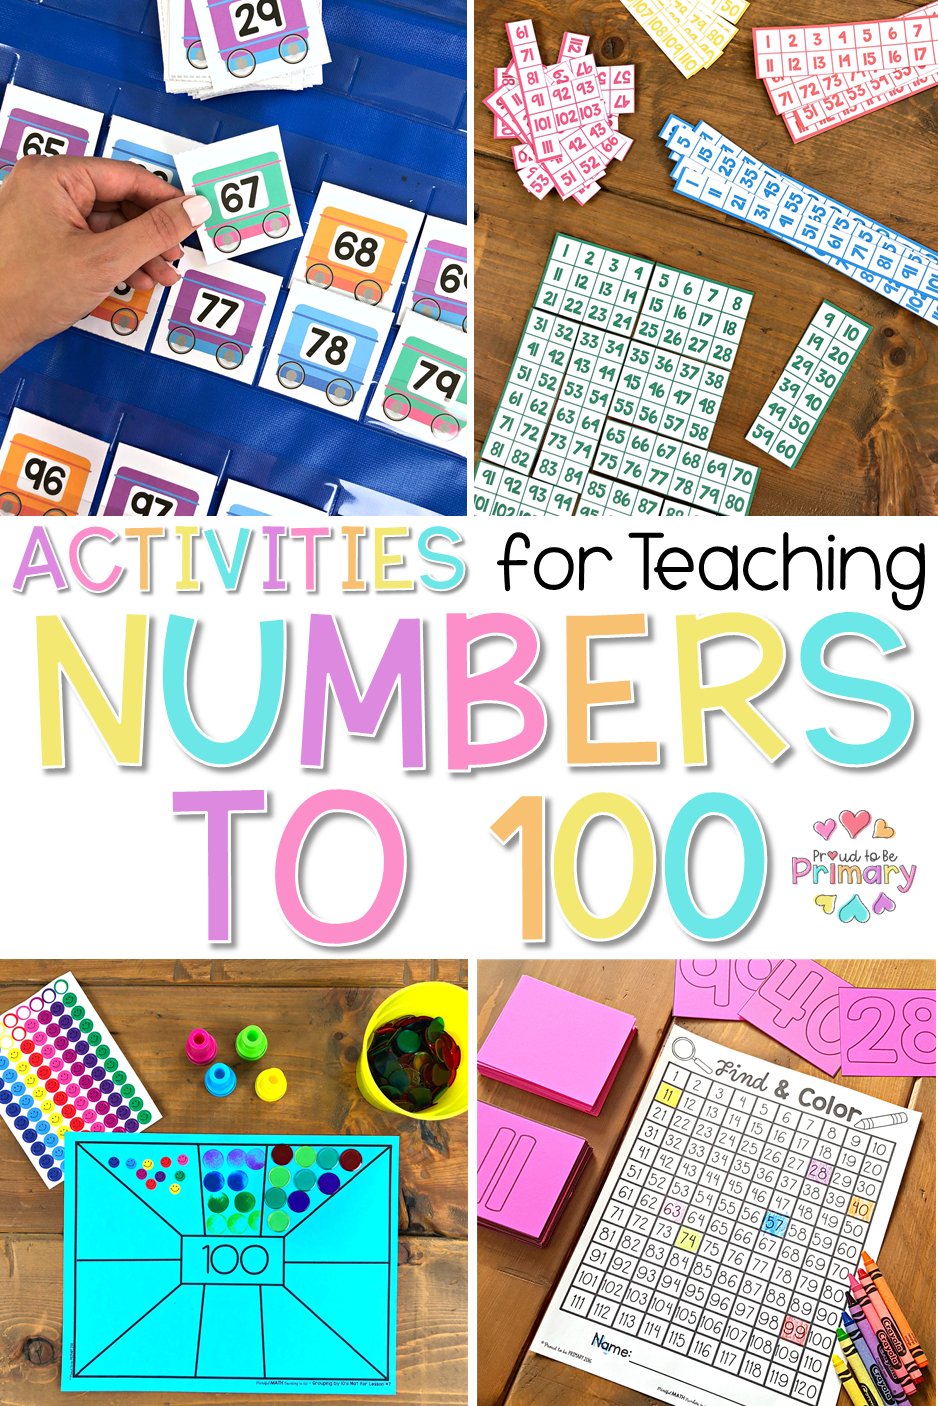 Numbers To 100 Activities And Lessons To Make Learning Fun Proud To Be Primary Math Activities School Activities Math Manipulatives